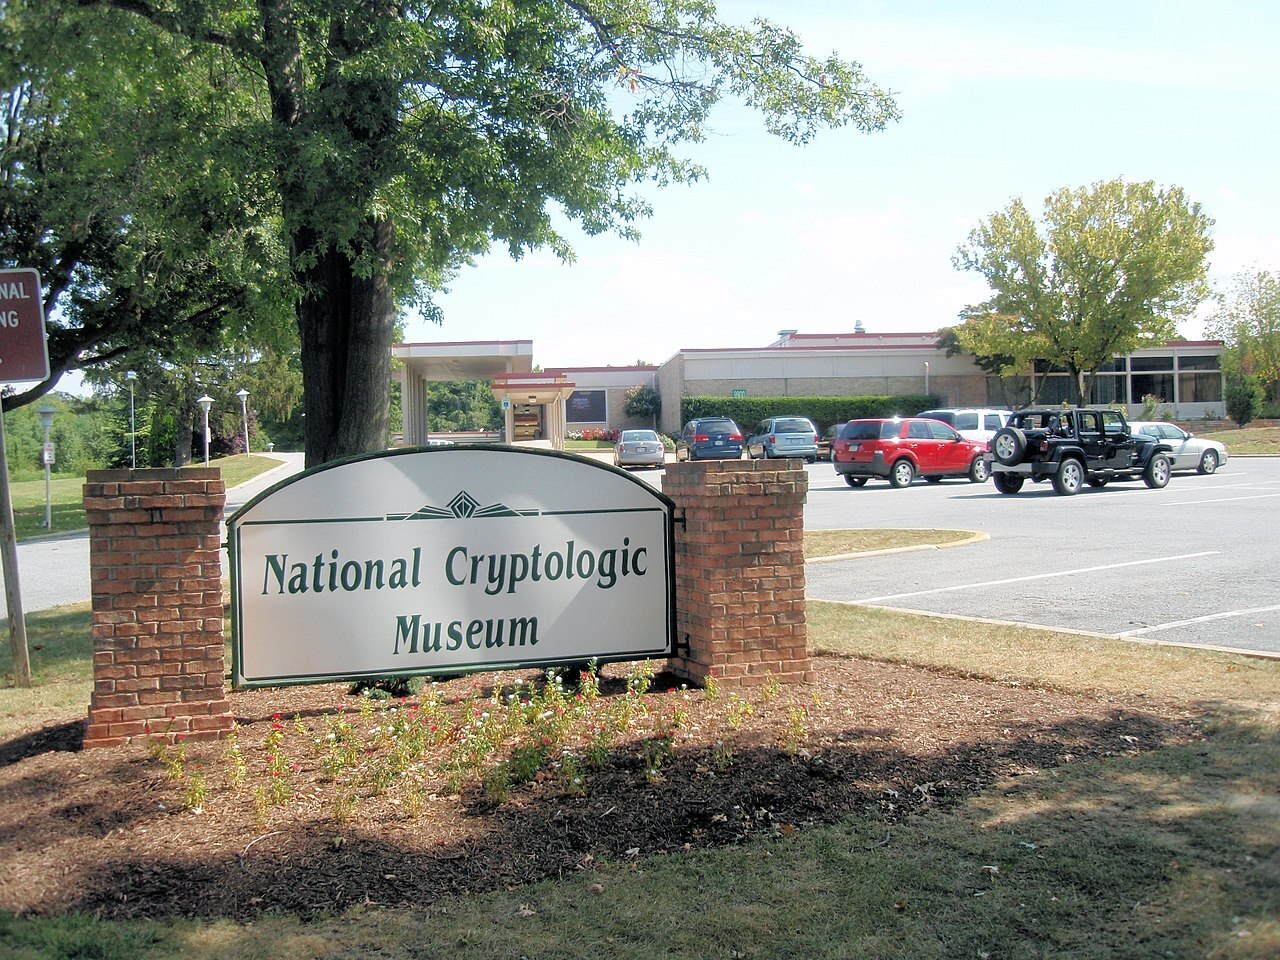 Fort Meade NSA Cryptologic Museum